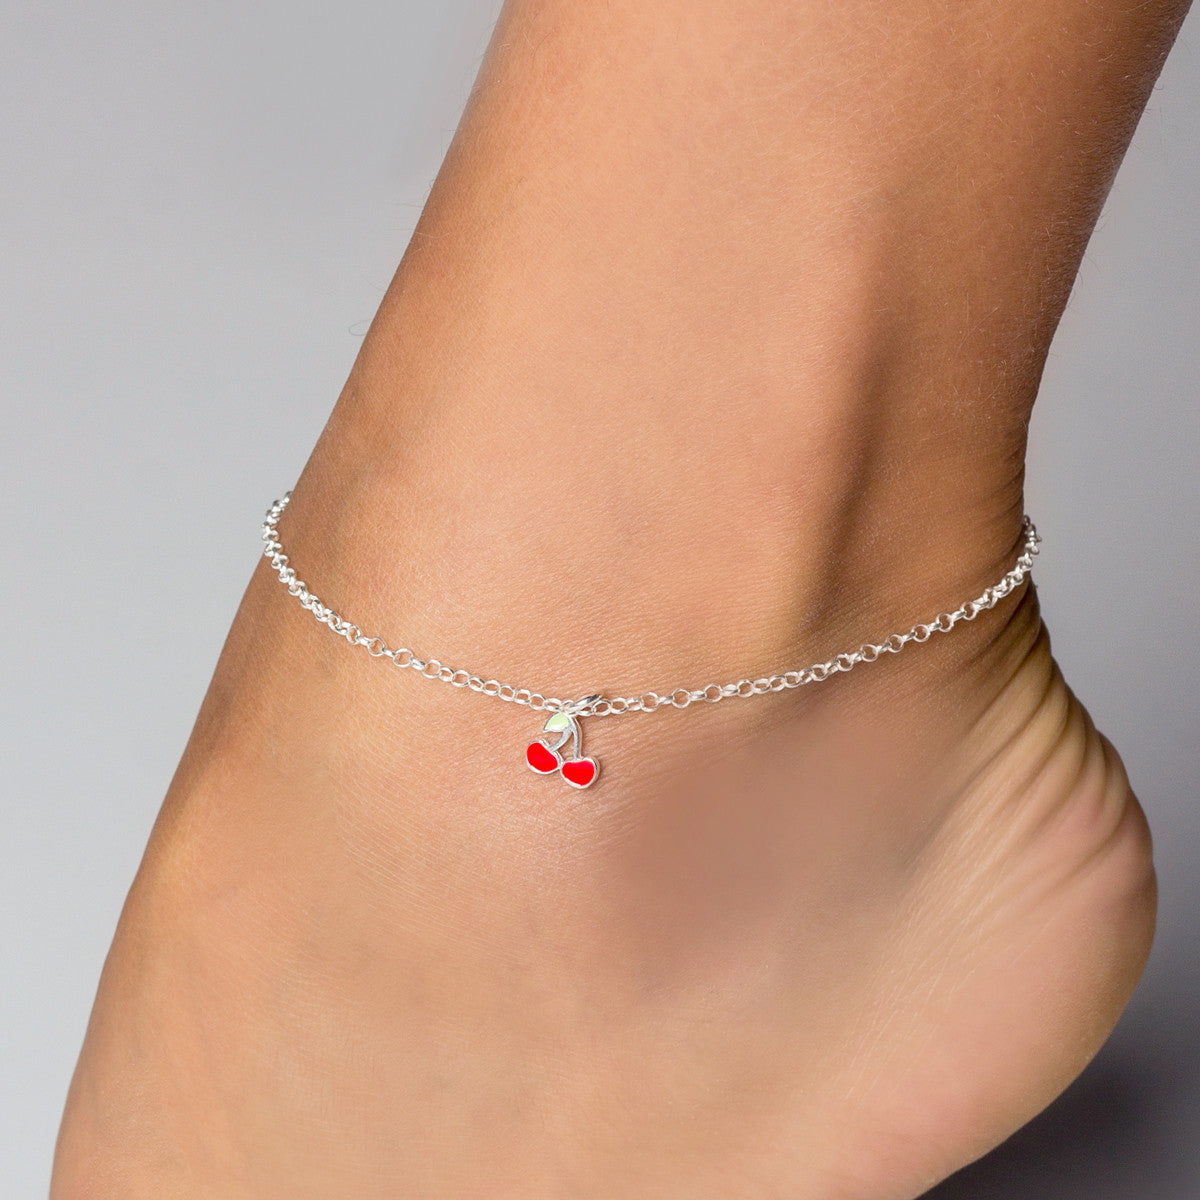 reliable from peace symbol barefoot anklet tone store women gold aliexpress for anklets bracelet sandals foot ankle com buy bracelets cool product jewelry